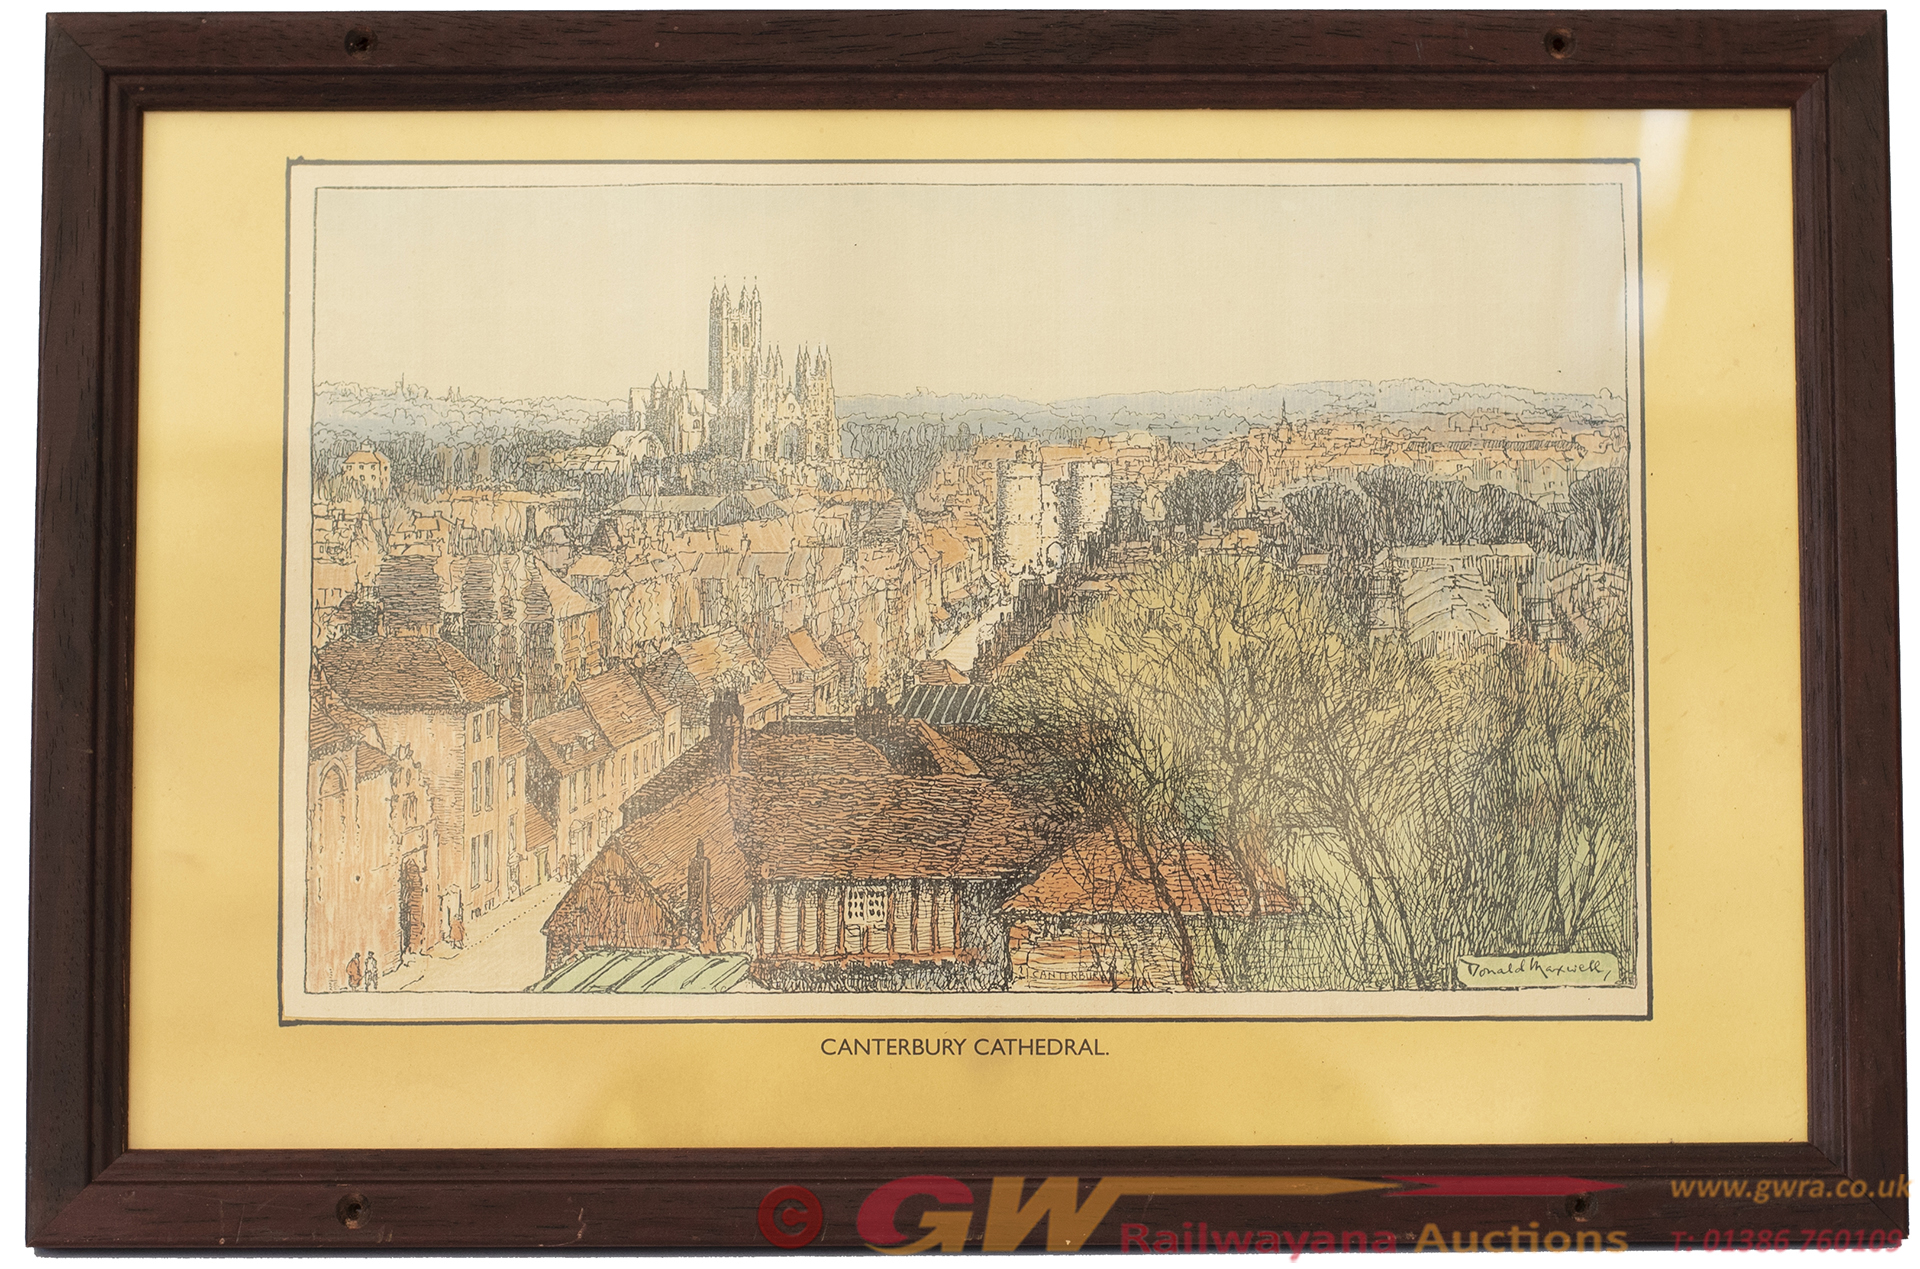 Carriage Print CANTERBURY CATHEDRAL, KENT By